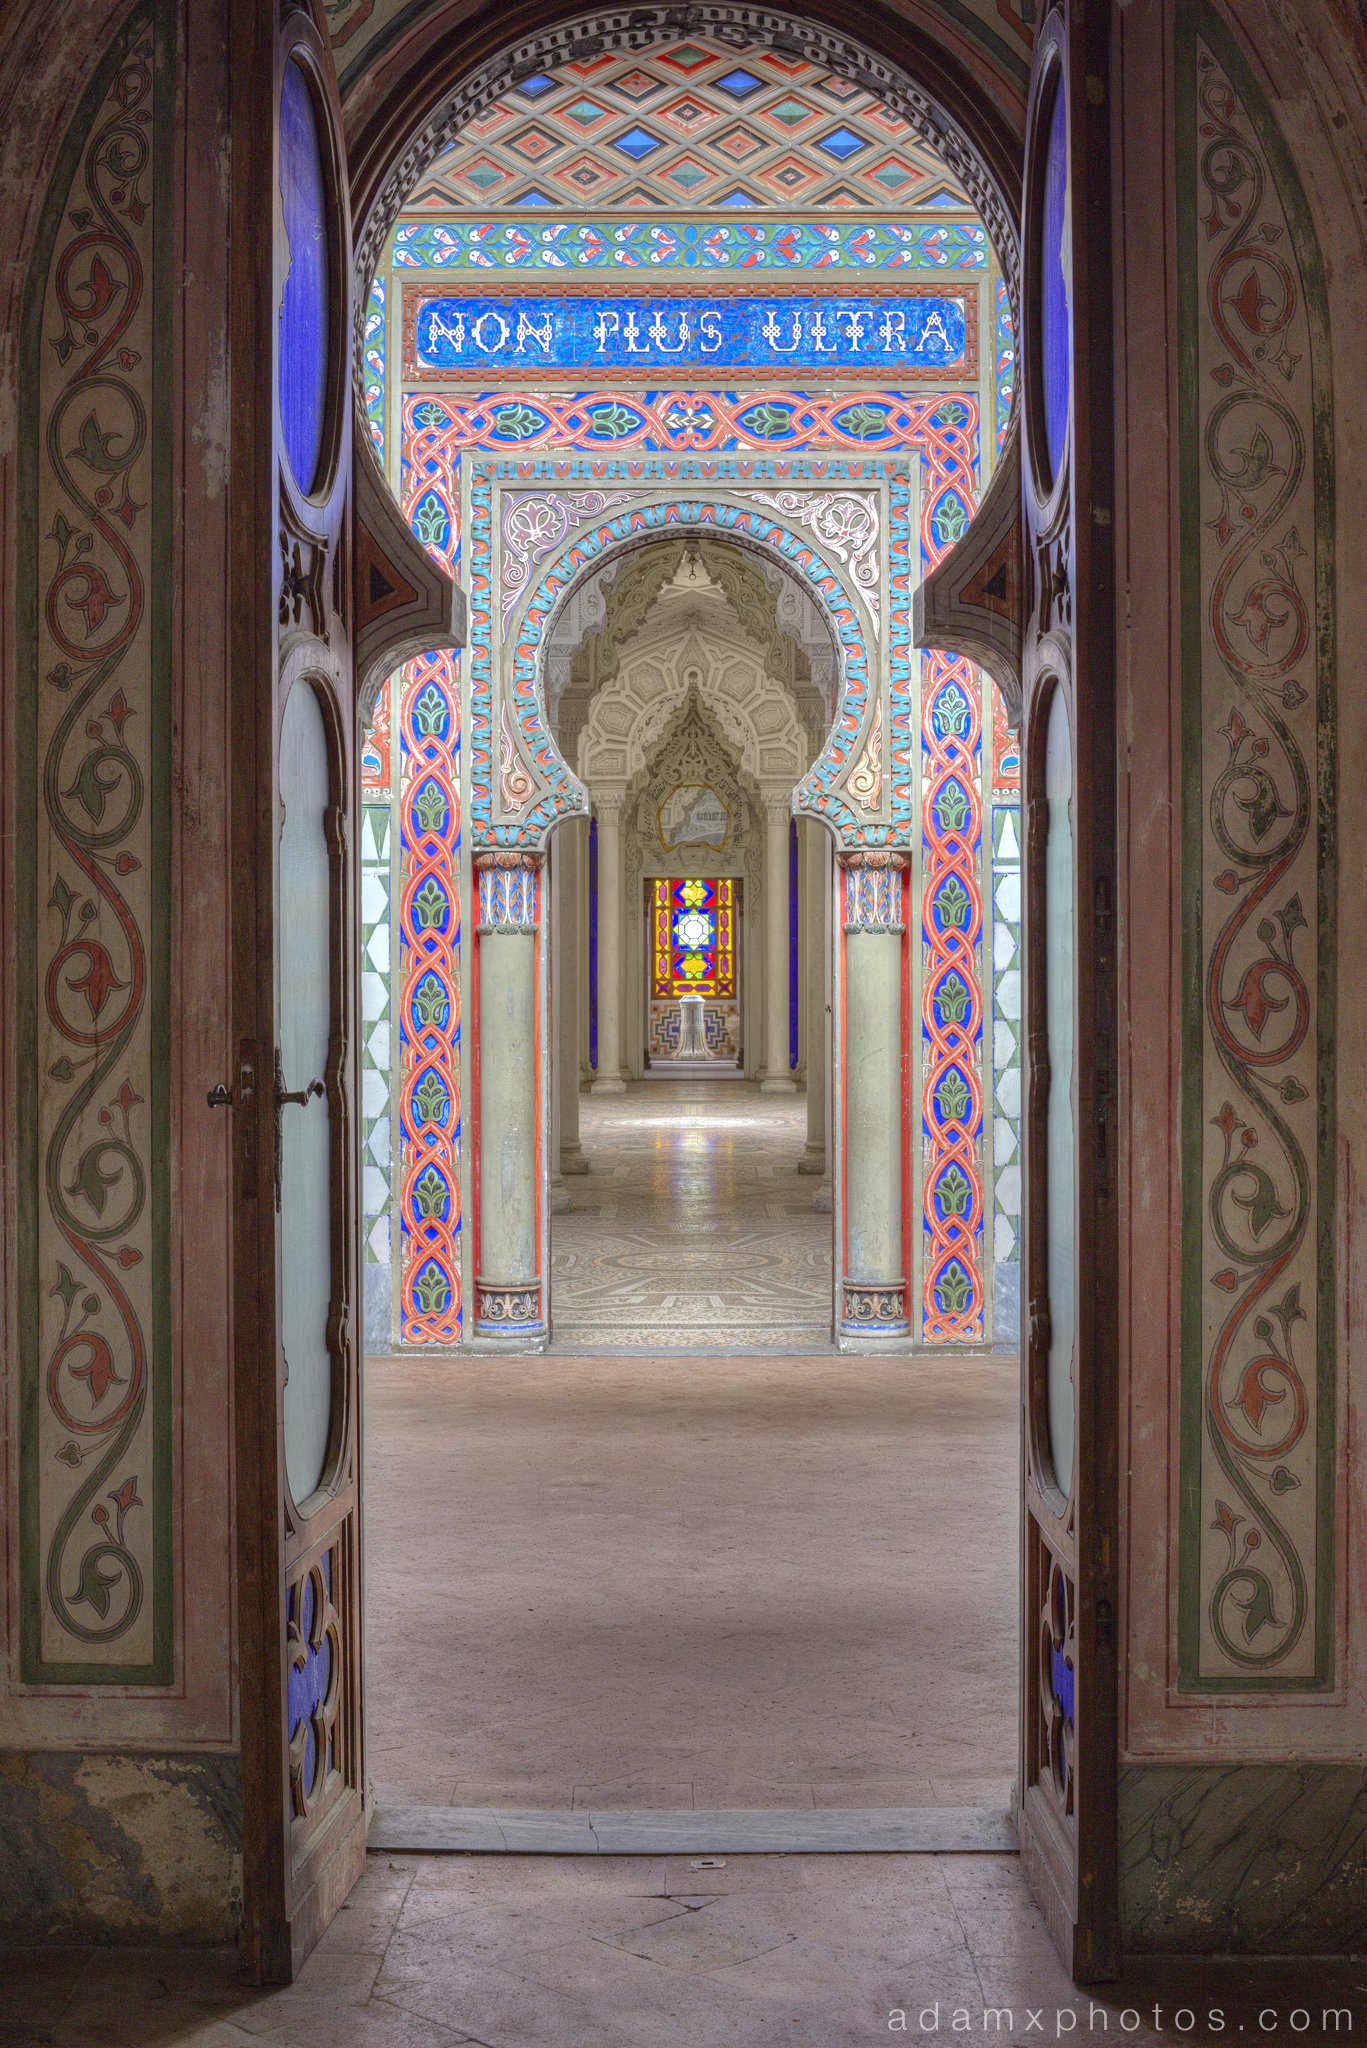 Non Plus Ultra Fairytale Castle of Sammezzano Castello di Sammezzano Urbex Adam X Urban Exploration photo photos report decay detail UE abandoned Ornate Moorish tiling tiled derelict unused empty disused decay decayed decaying grimy grime